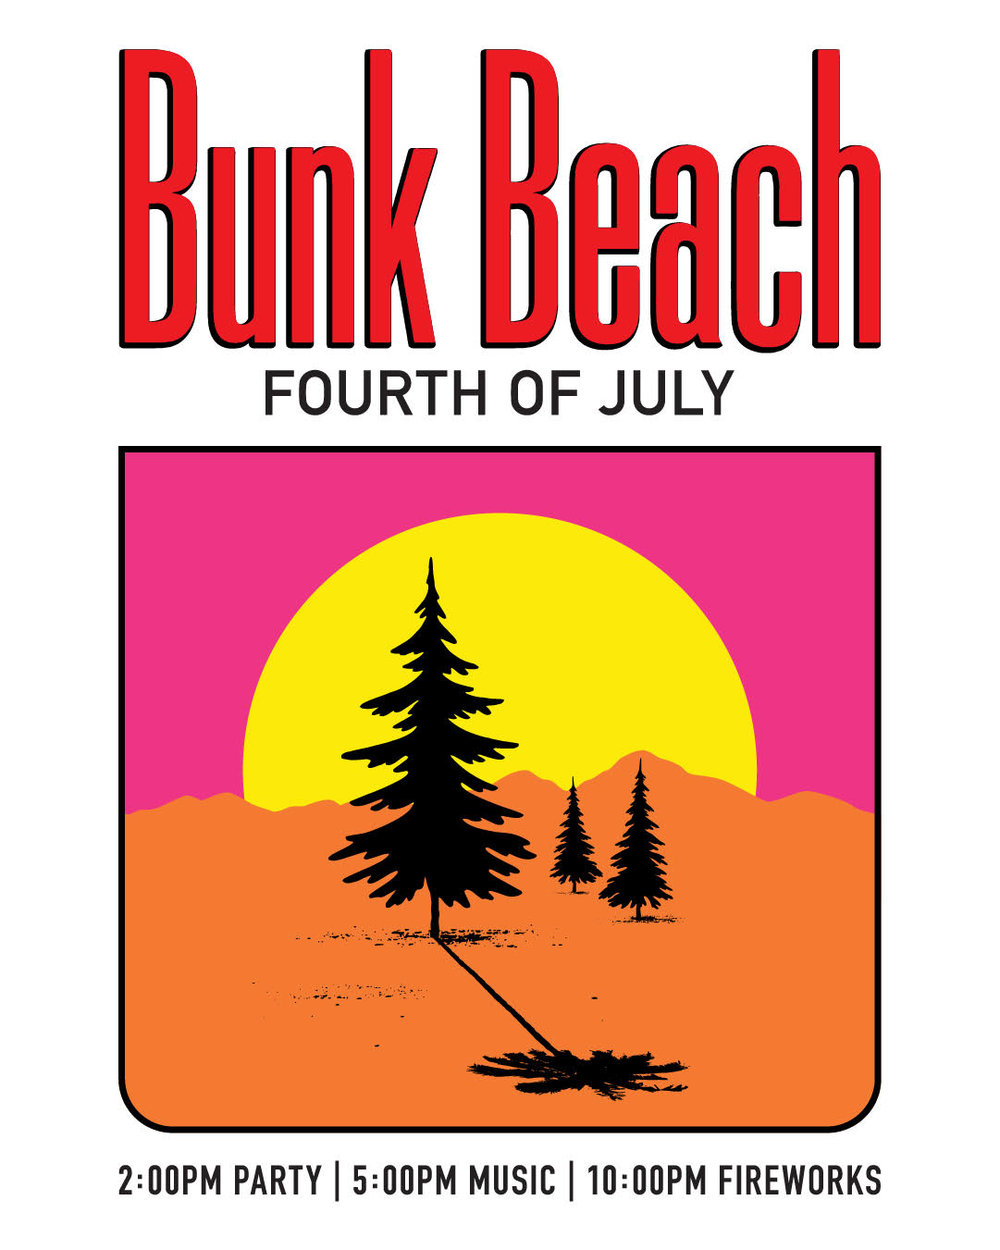 bunk beach official instagram image.jpg